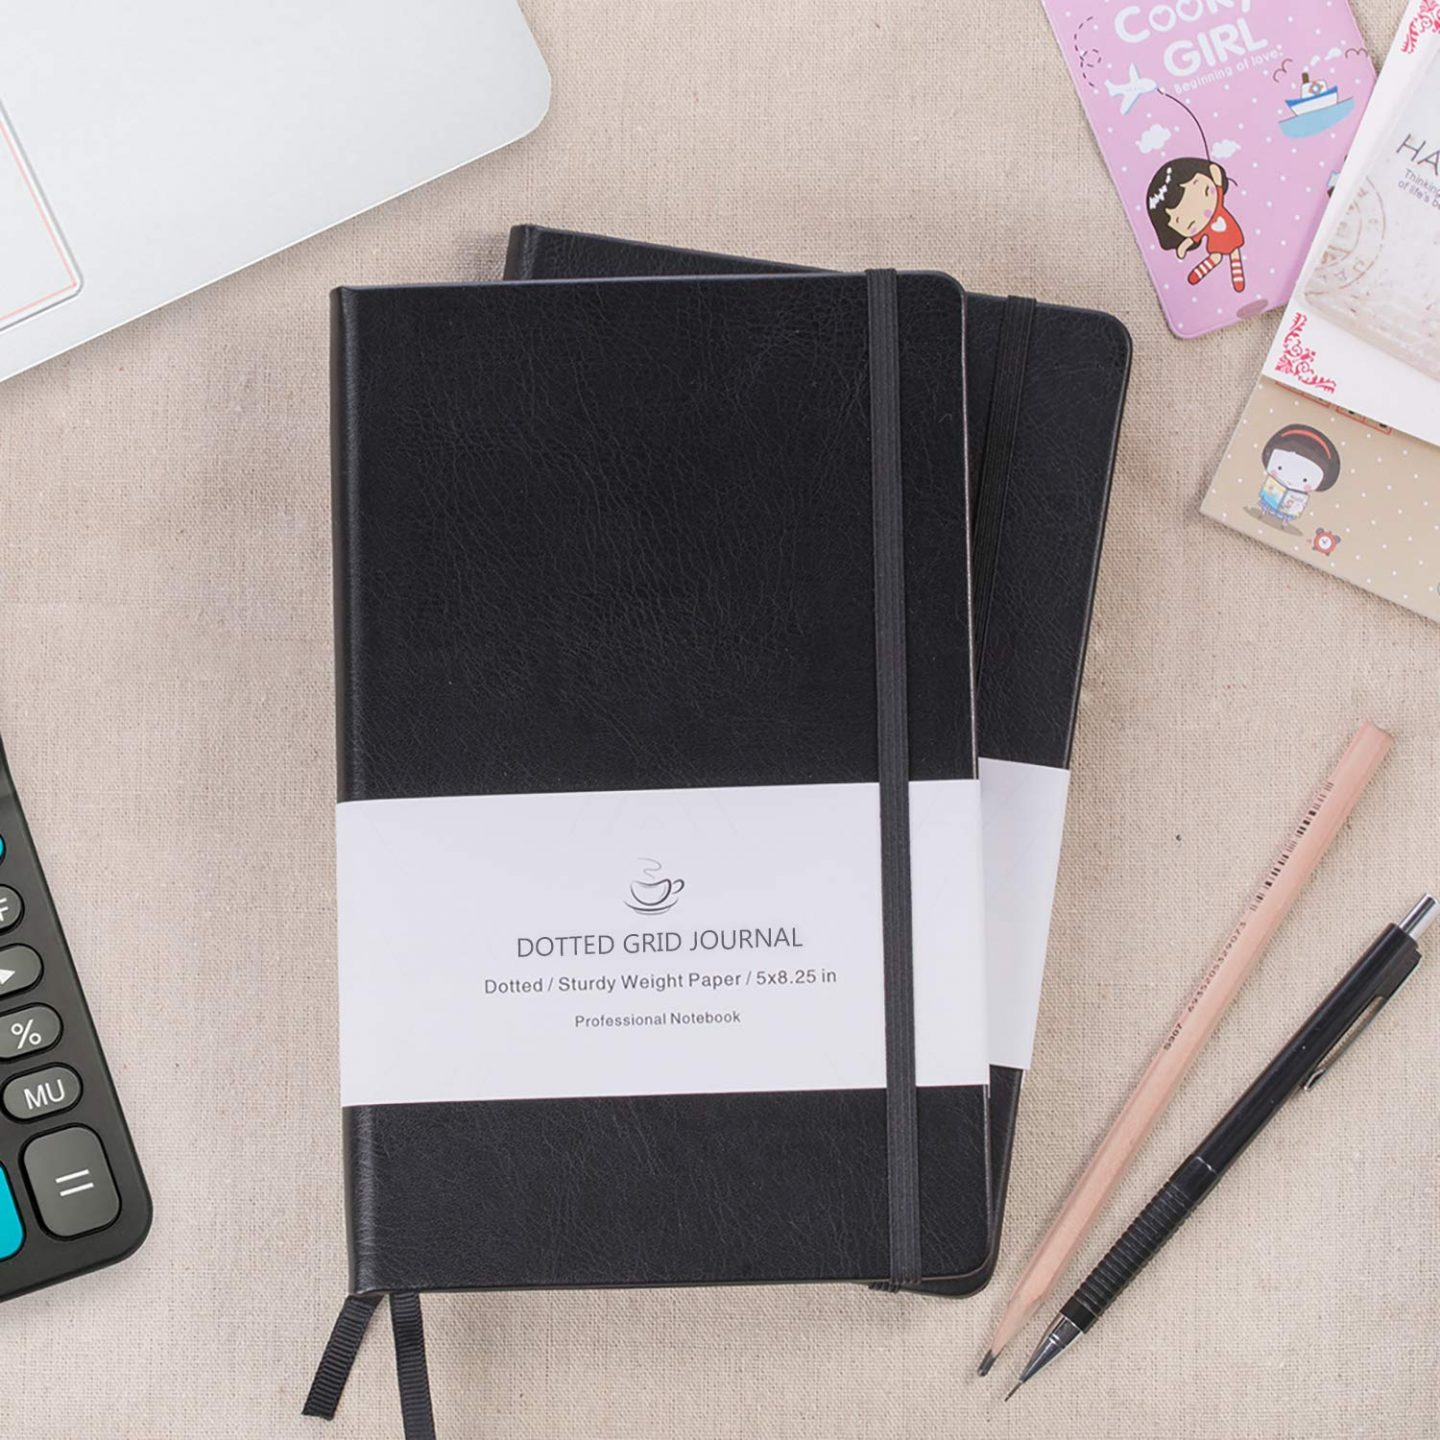 Poluma Dotted grid Journal is a great budget friendly alternative to the Leuchtturm1917 for bullet journals